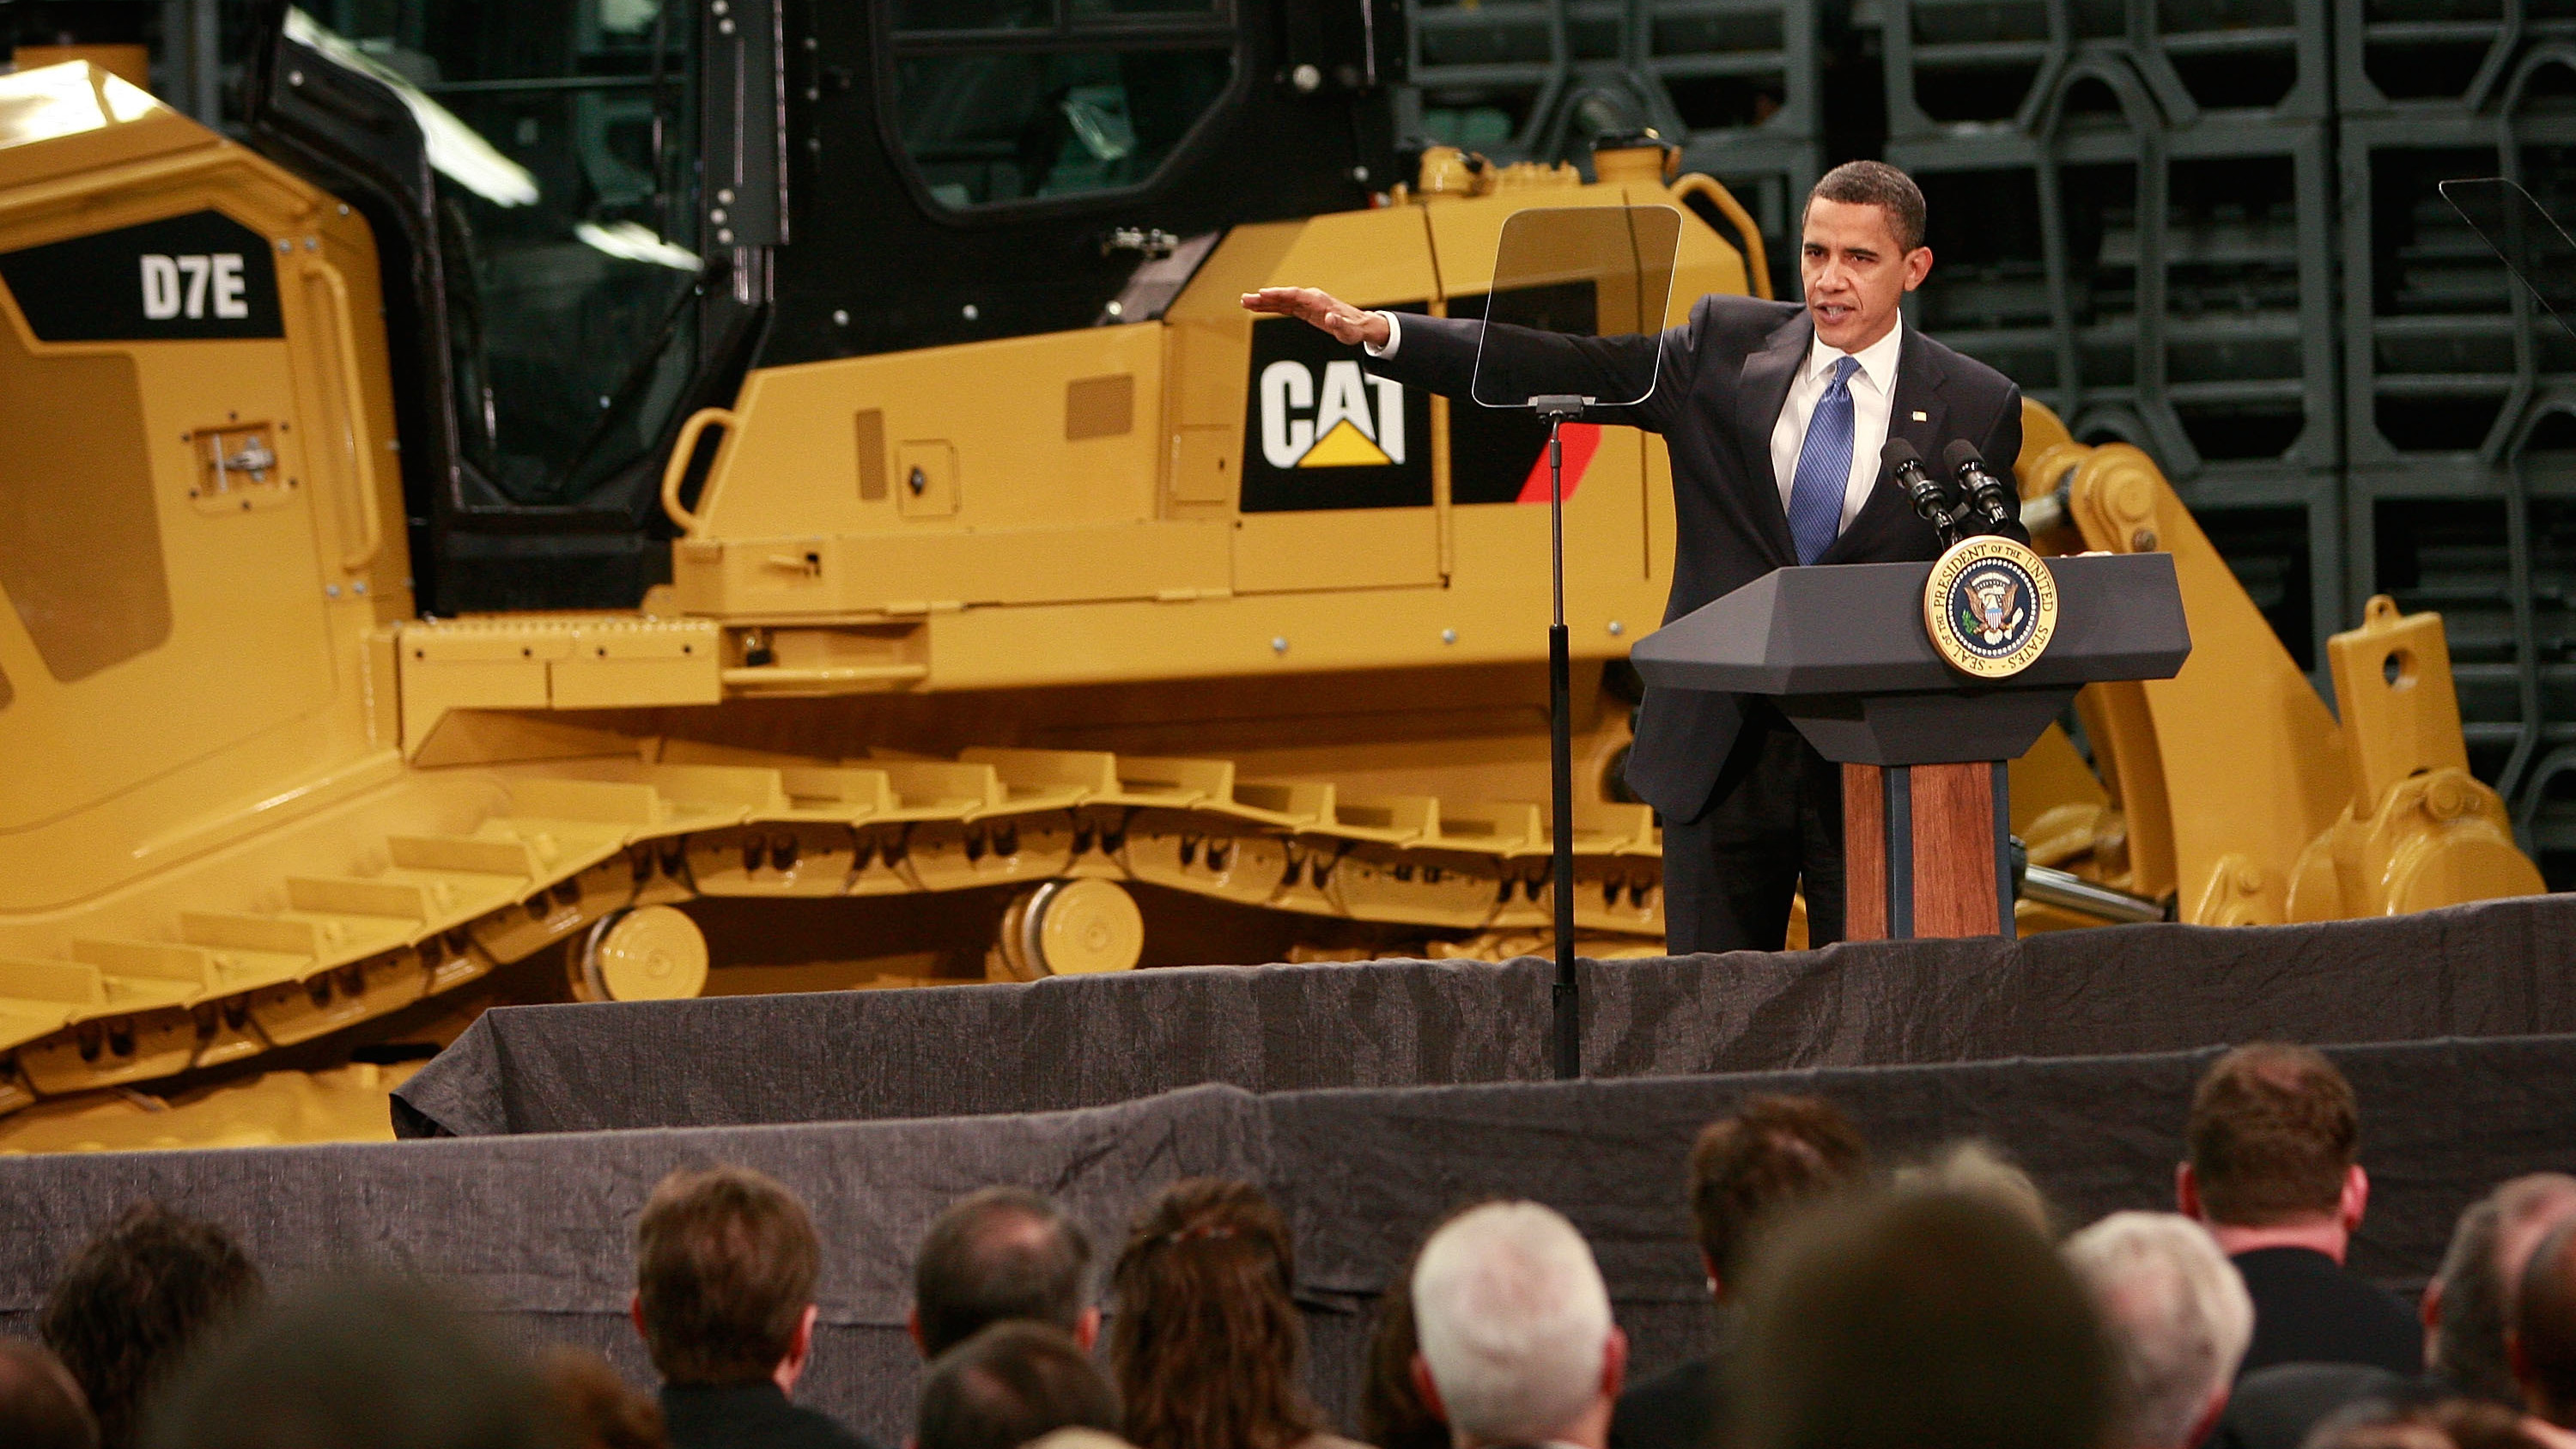 President Barack Obama speaks to workers at a Caterpillar plant about creating jobs and stimulating the economy on February 12, 2009 in East Peoria, Illinois. Stung by the global recession, Caterpillar announced in January it would cut more than 20,000 jobs. (Scott Olson/Getty Images)